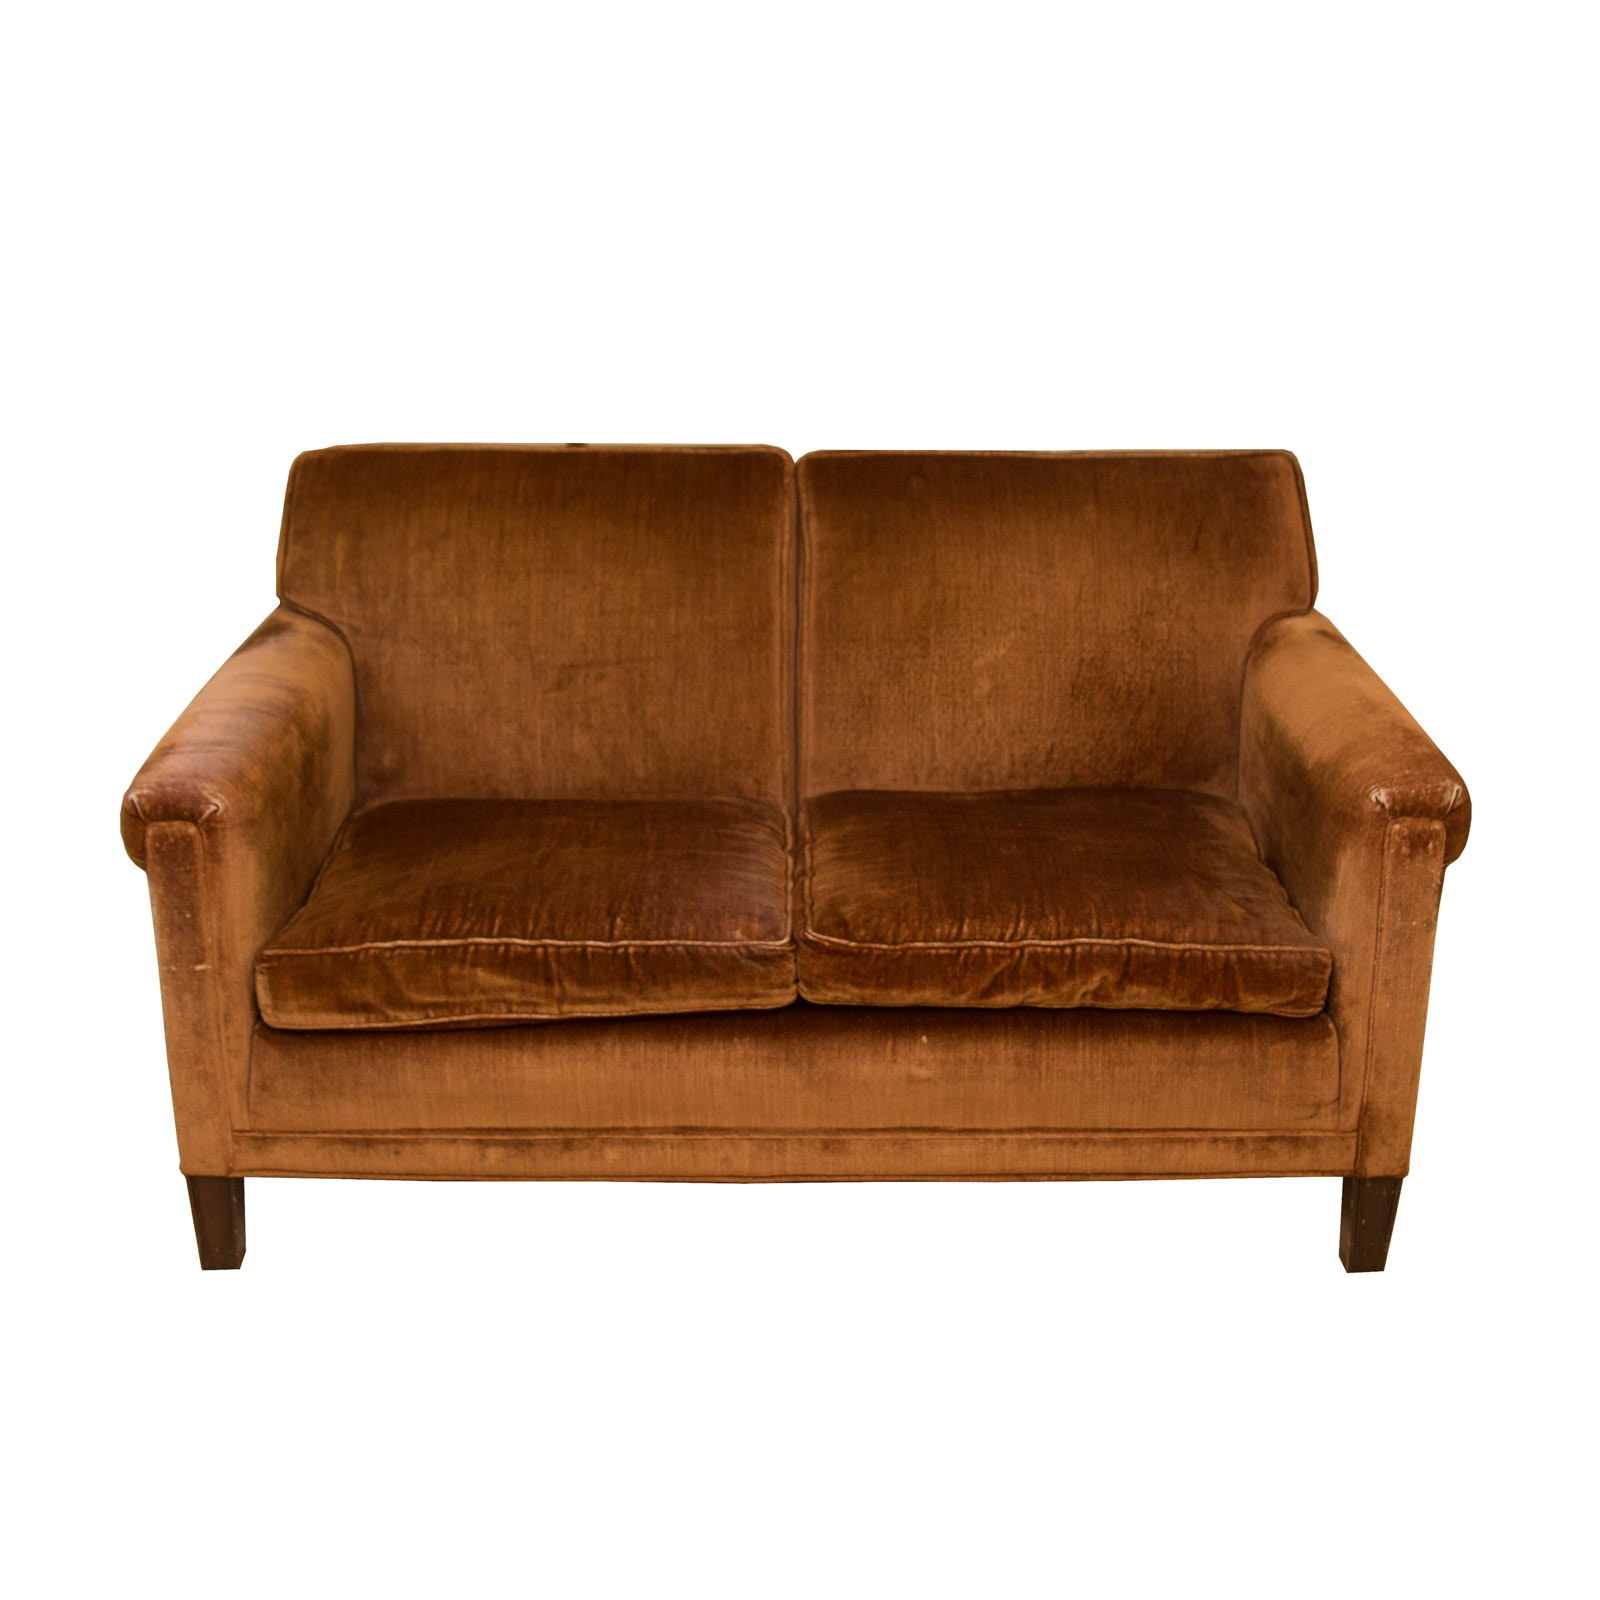 Vintage Upholstered Copper Coloured Sofa